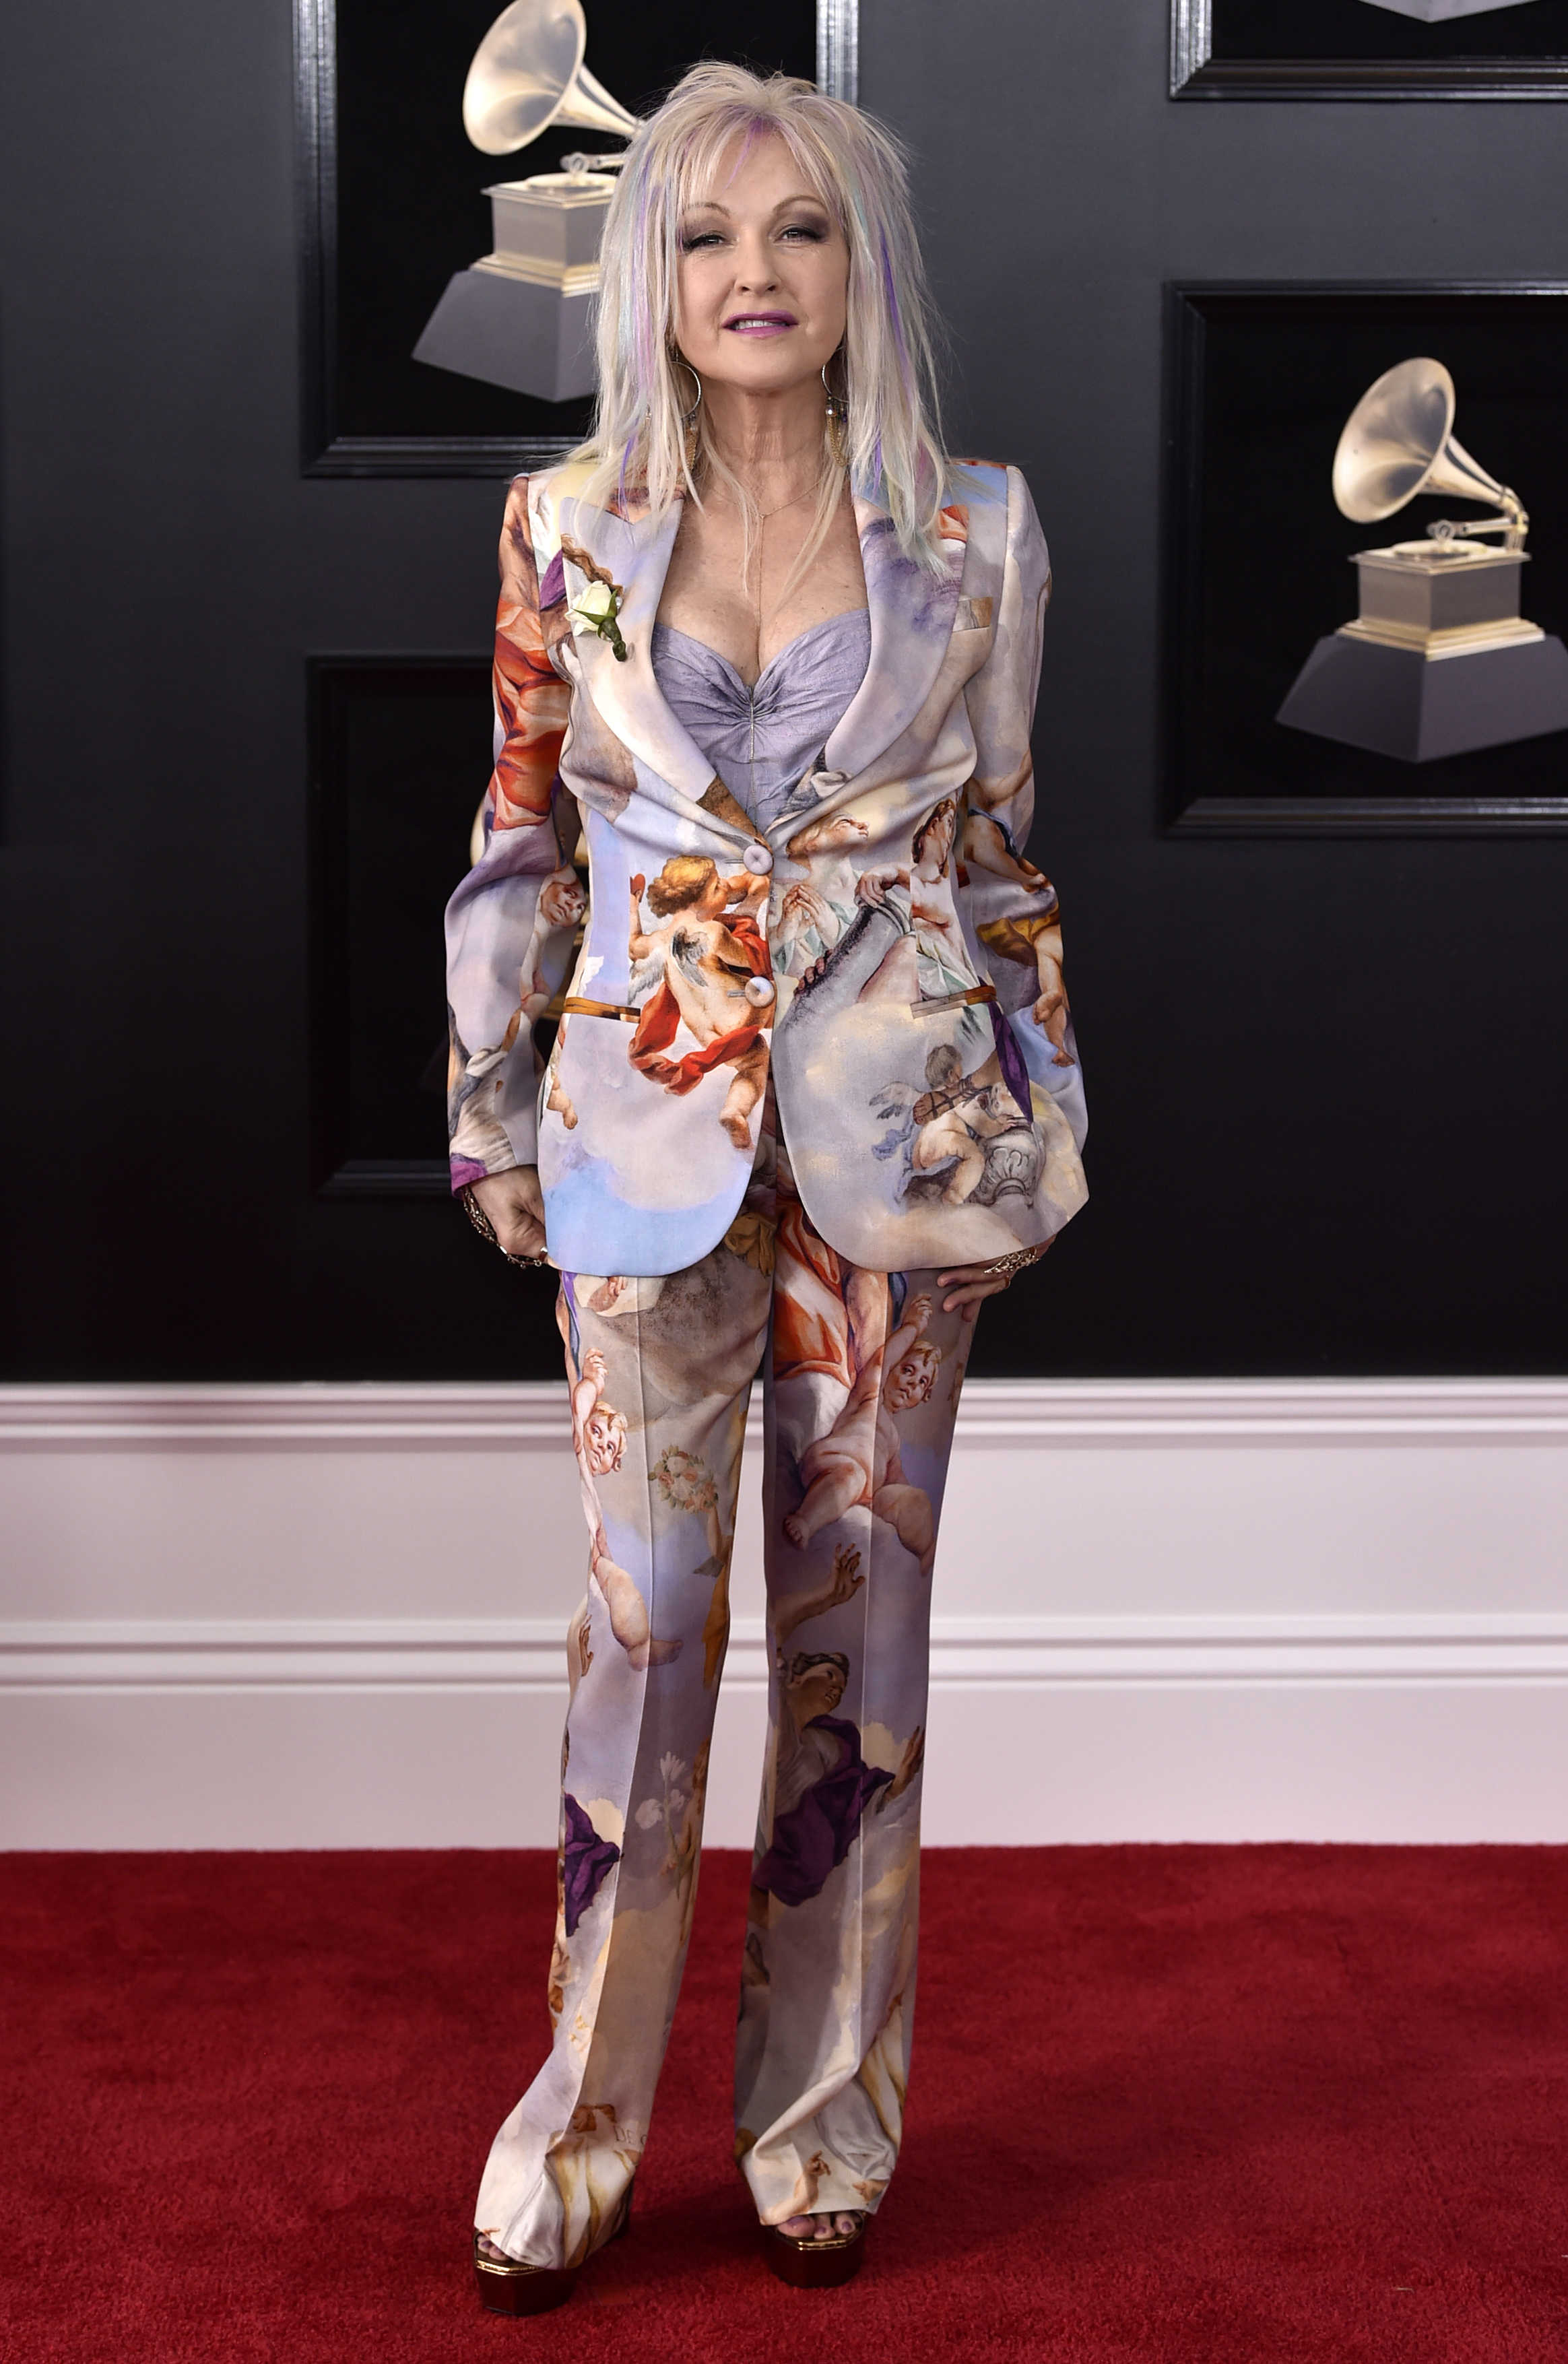 <div class='meta'><div class='origin-logo' data-origin='AP'></div><span class='caption-text' data-credit='Evan Agostini/Invision/AP'>Cyndi Lauper arrives at the 60th annual Grammy Awards at Madison Square Garden on Sunday, Jan. 28, 2018, in New York.</span></div>